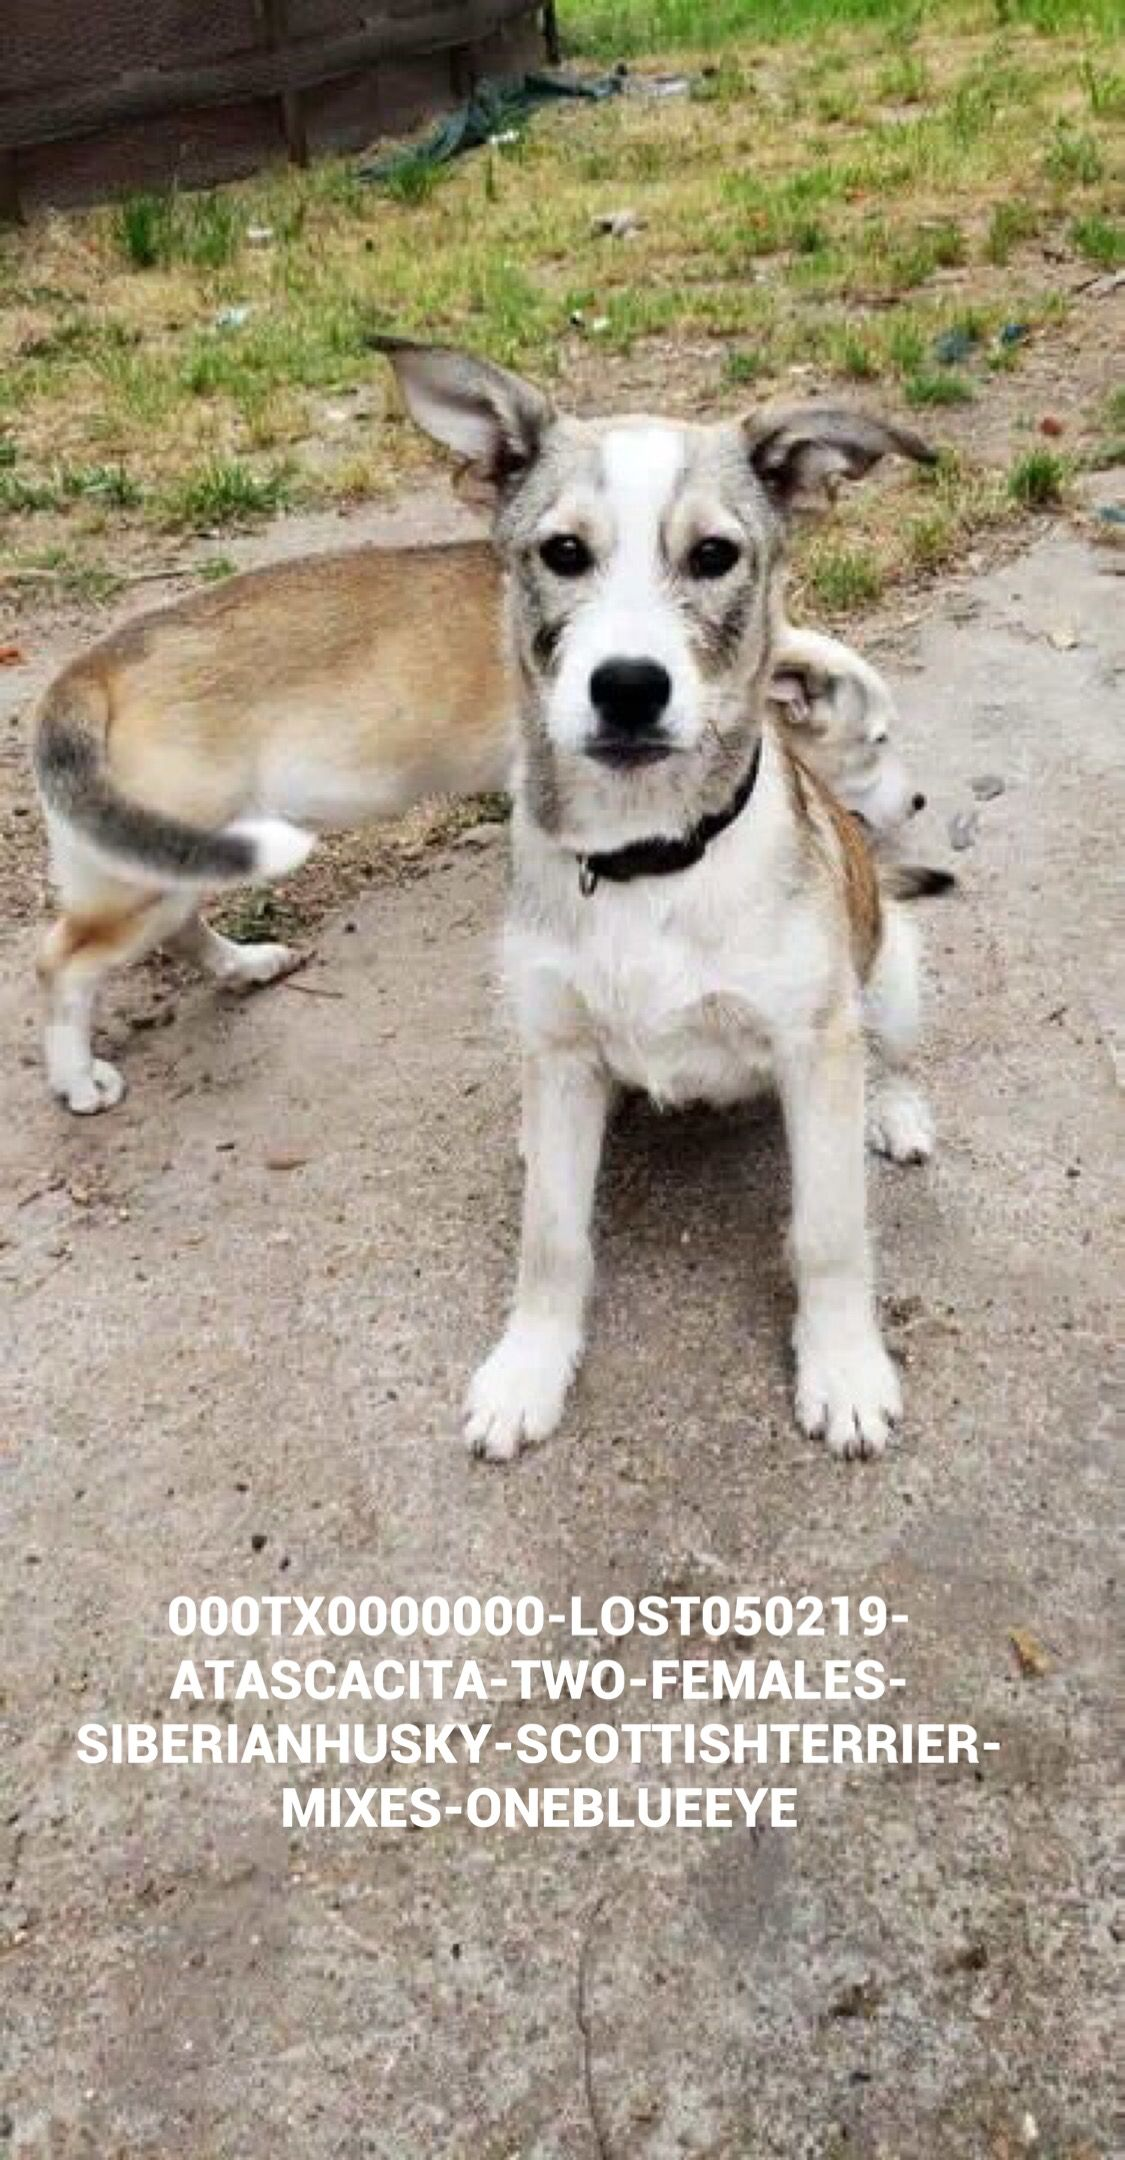 Lostdogs 5 2 19 Atascacita Tx Two Puppies Females 7 Months Old